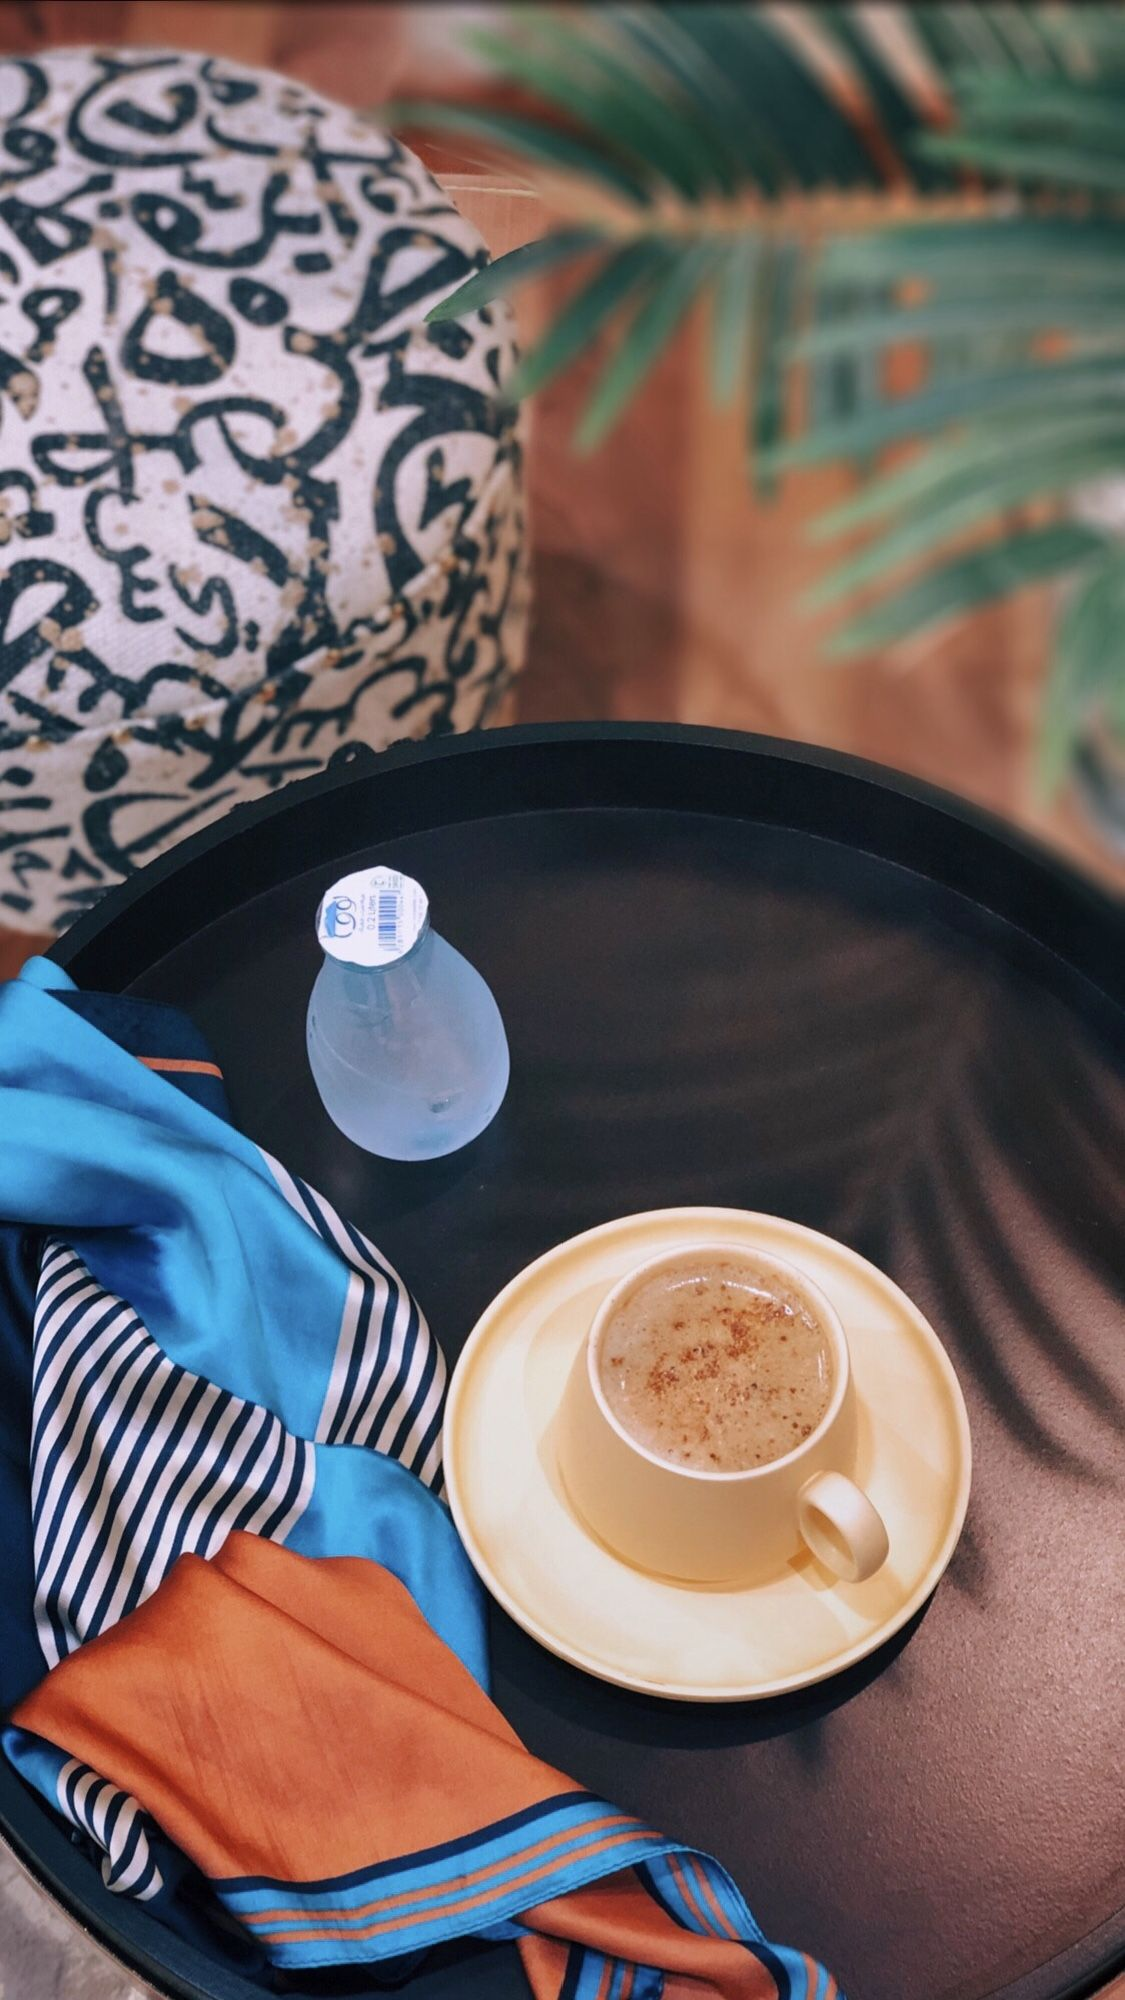 Pin by wadha on يوميات (With images) Coffee art, Coffee